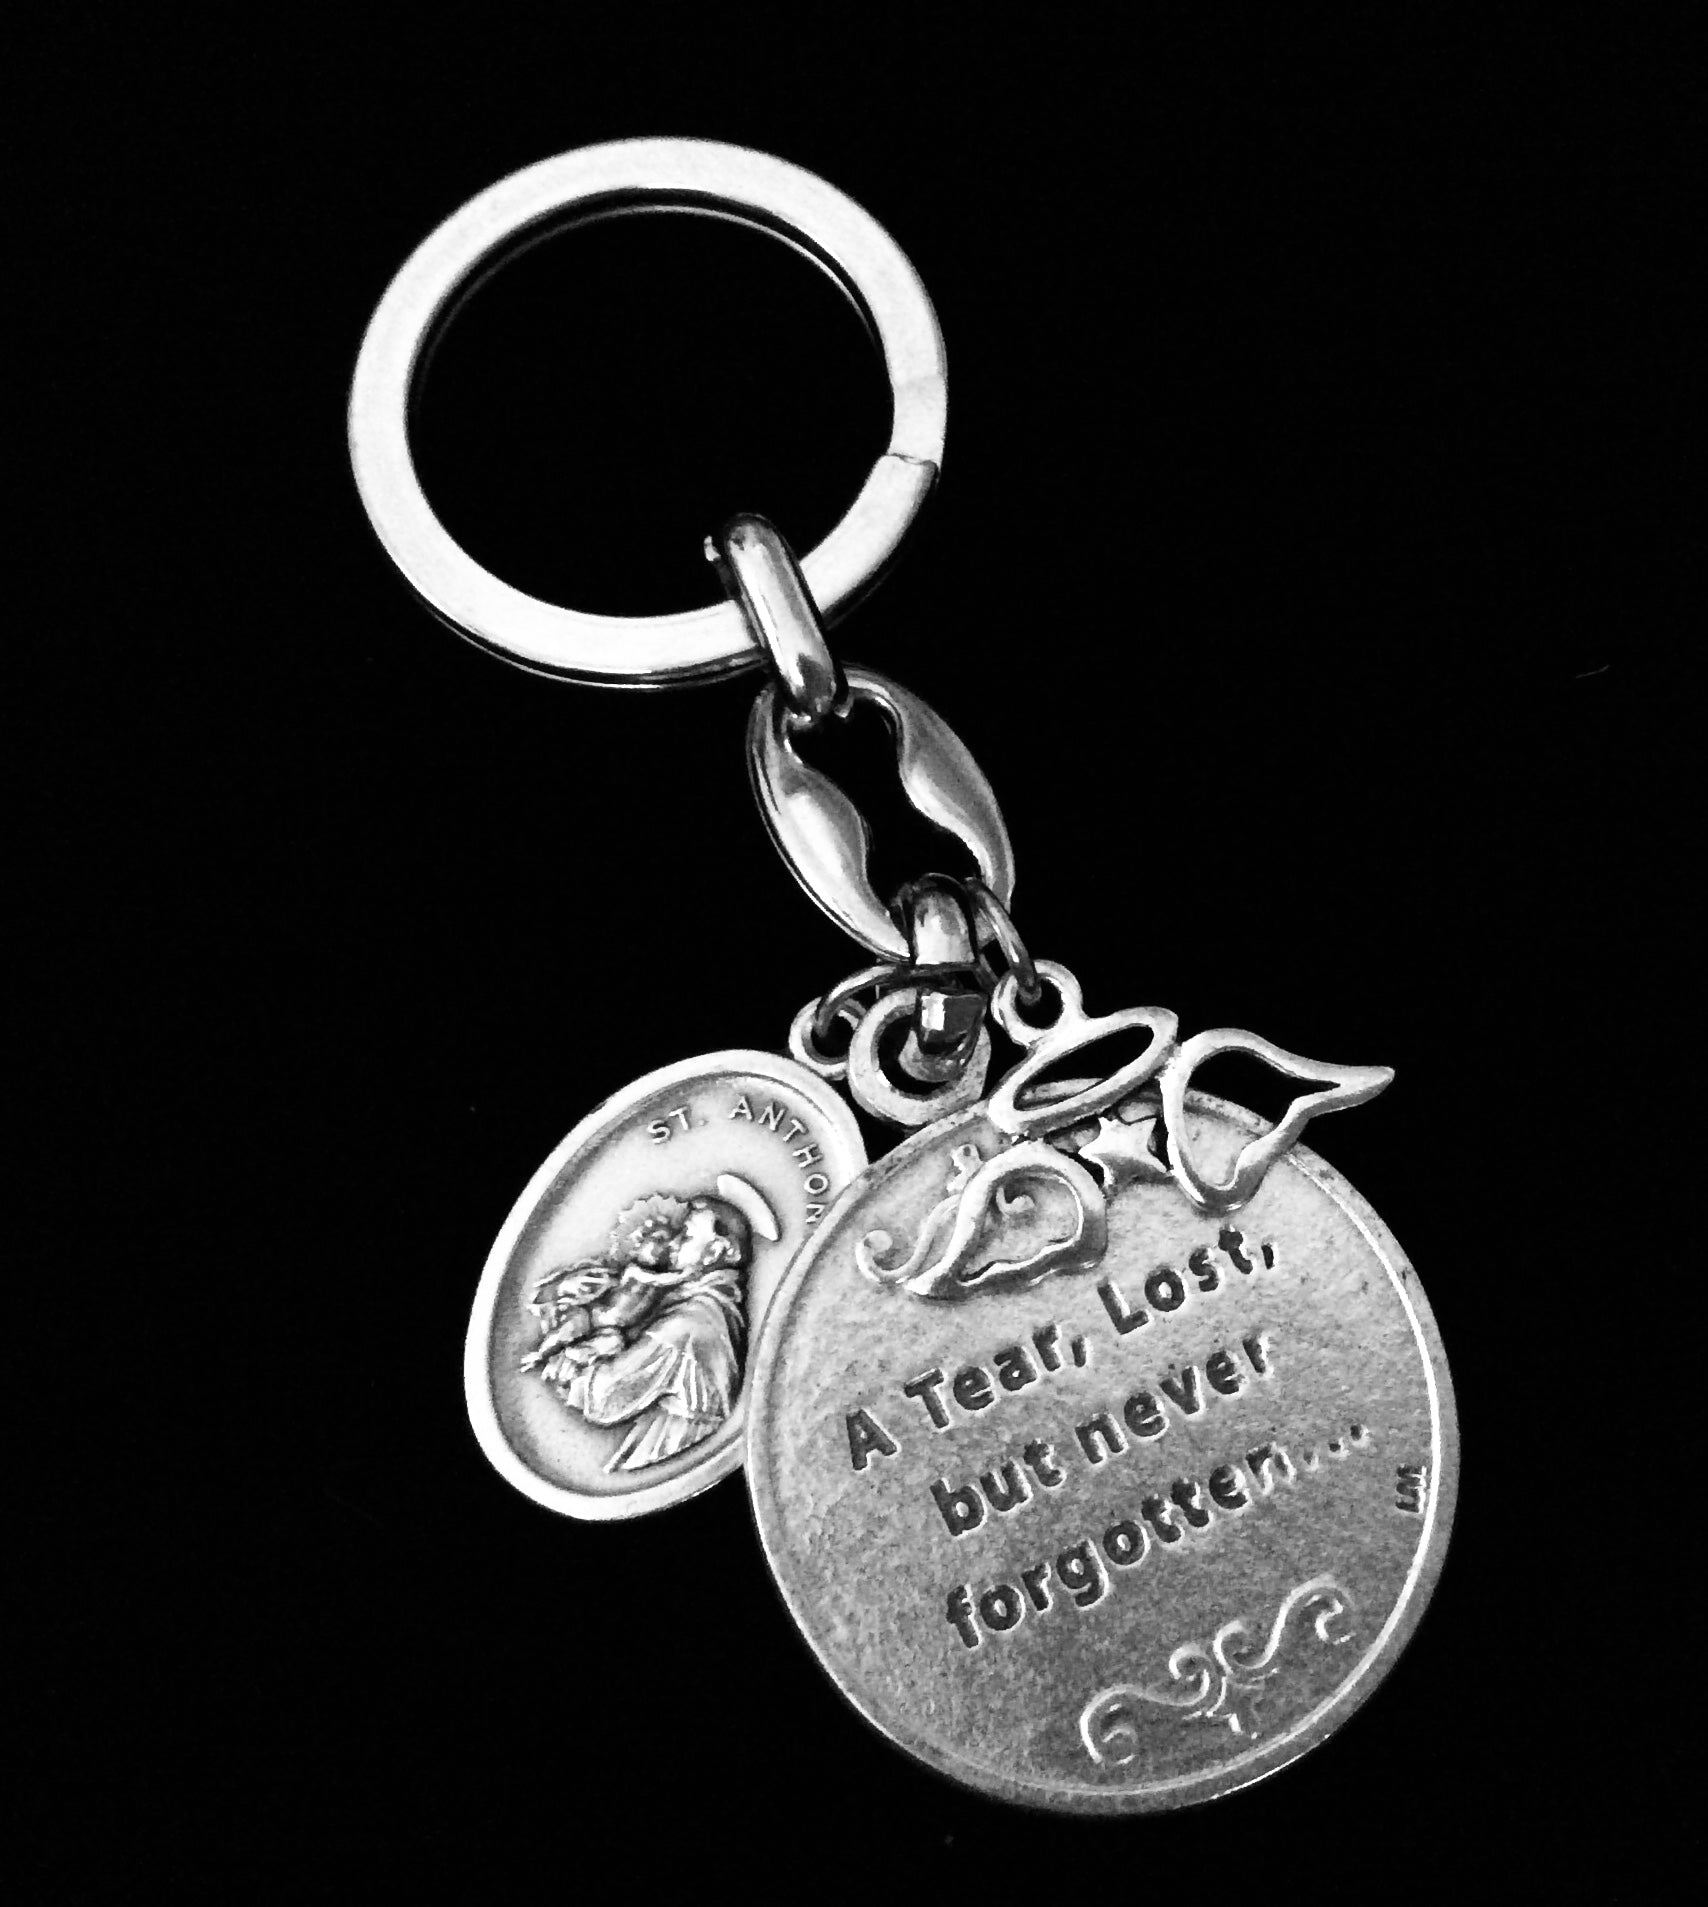 Key Fob Keychain >> Memorial Key Chain Saint Francis Saint Anthony Fob Keychain Medal Silver Key Ring Gift Inspirational Jewelry Angel Wings A Tear Lost But Never